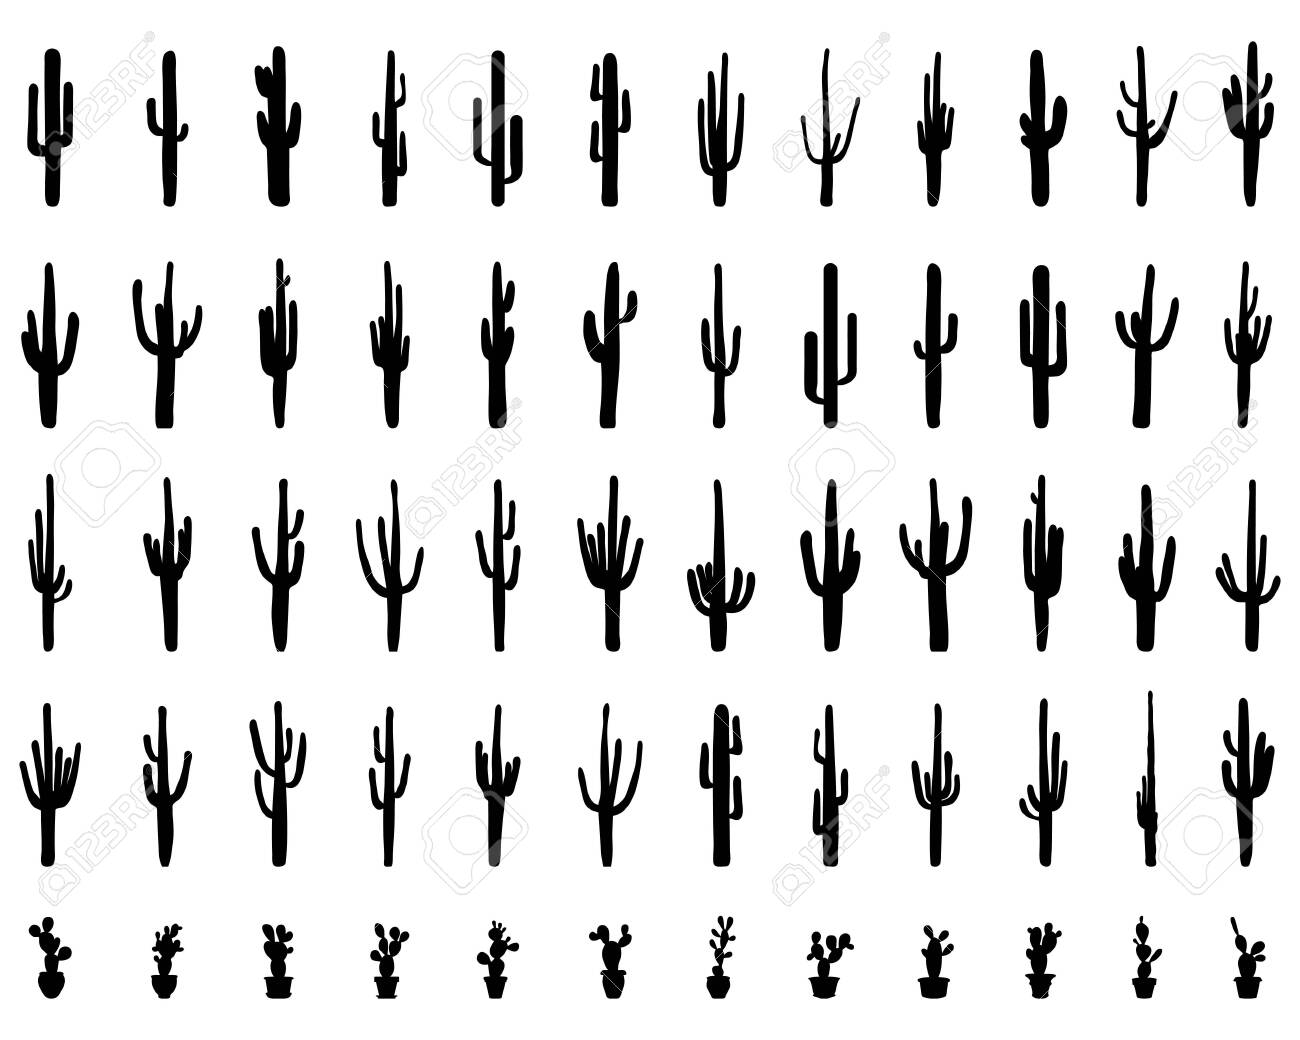 Black silhouettes of different cactus on the background - 148800752